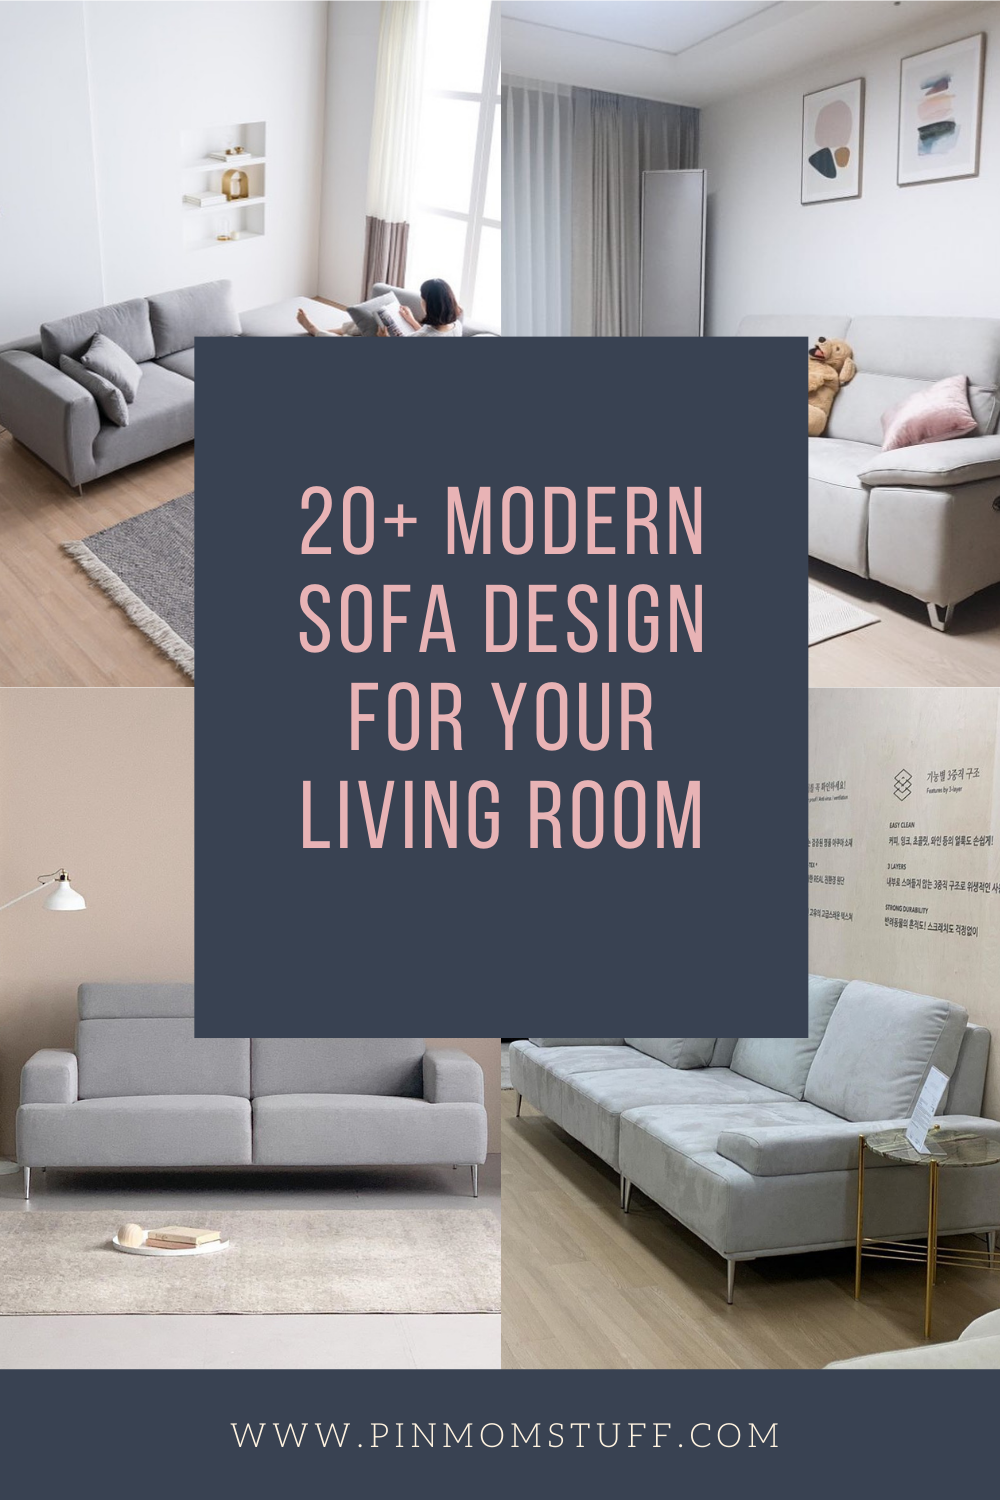 20+ Modern Sofa Design For Your Living Room